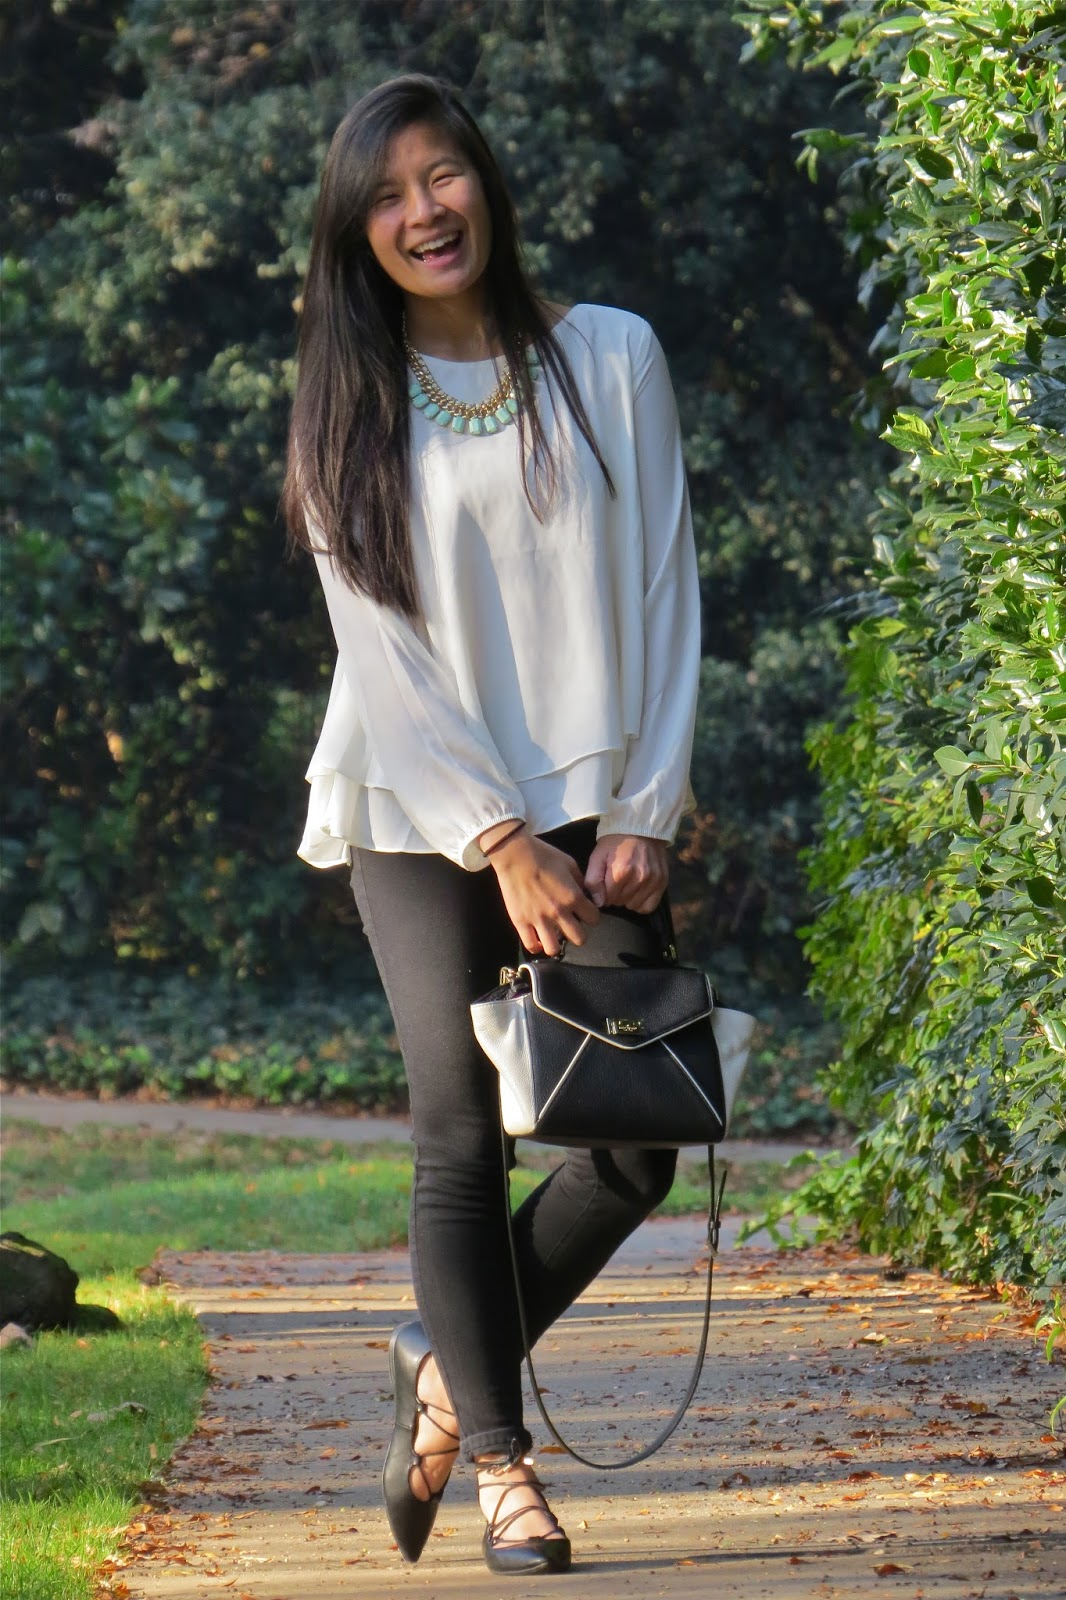 How_to_style_a_black_and_white_outfit